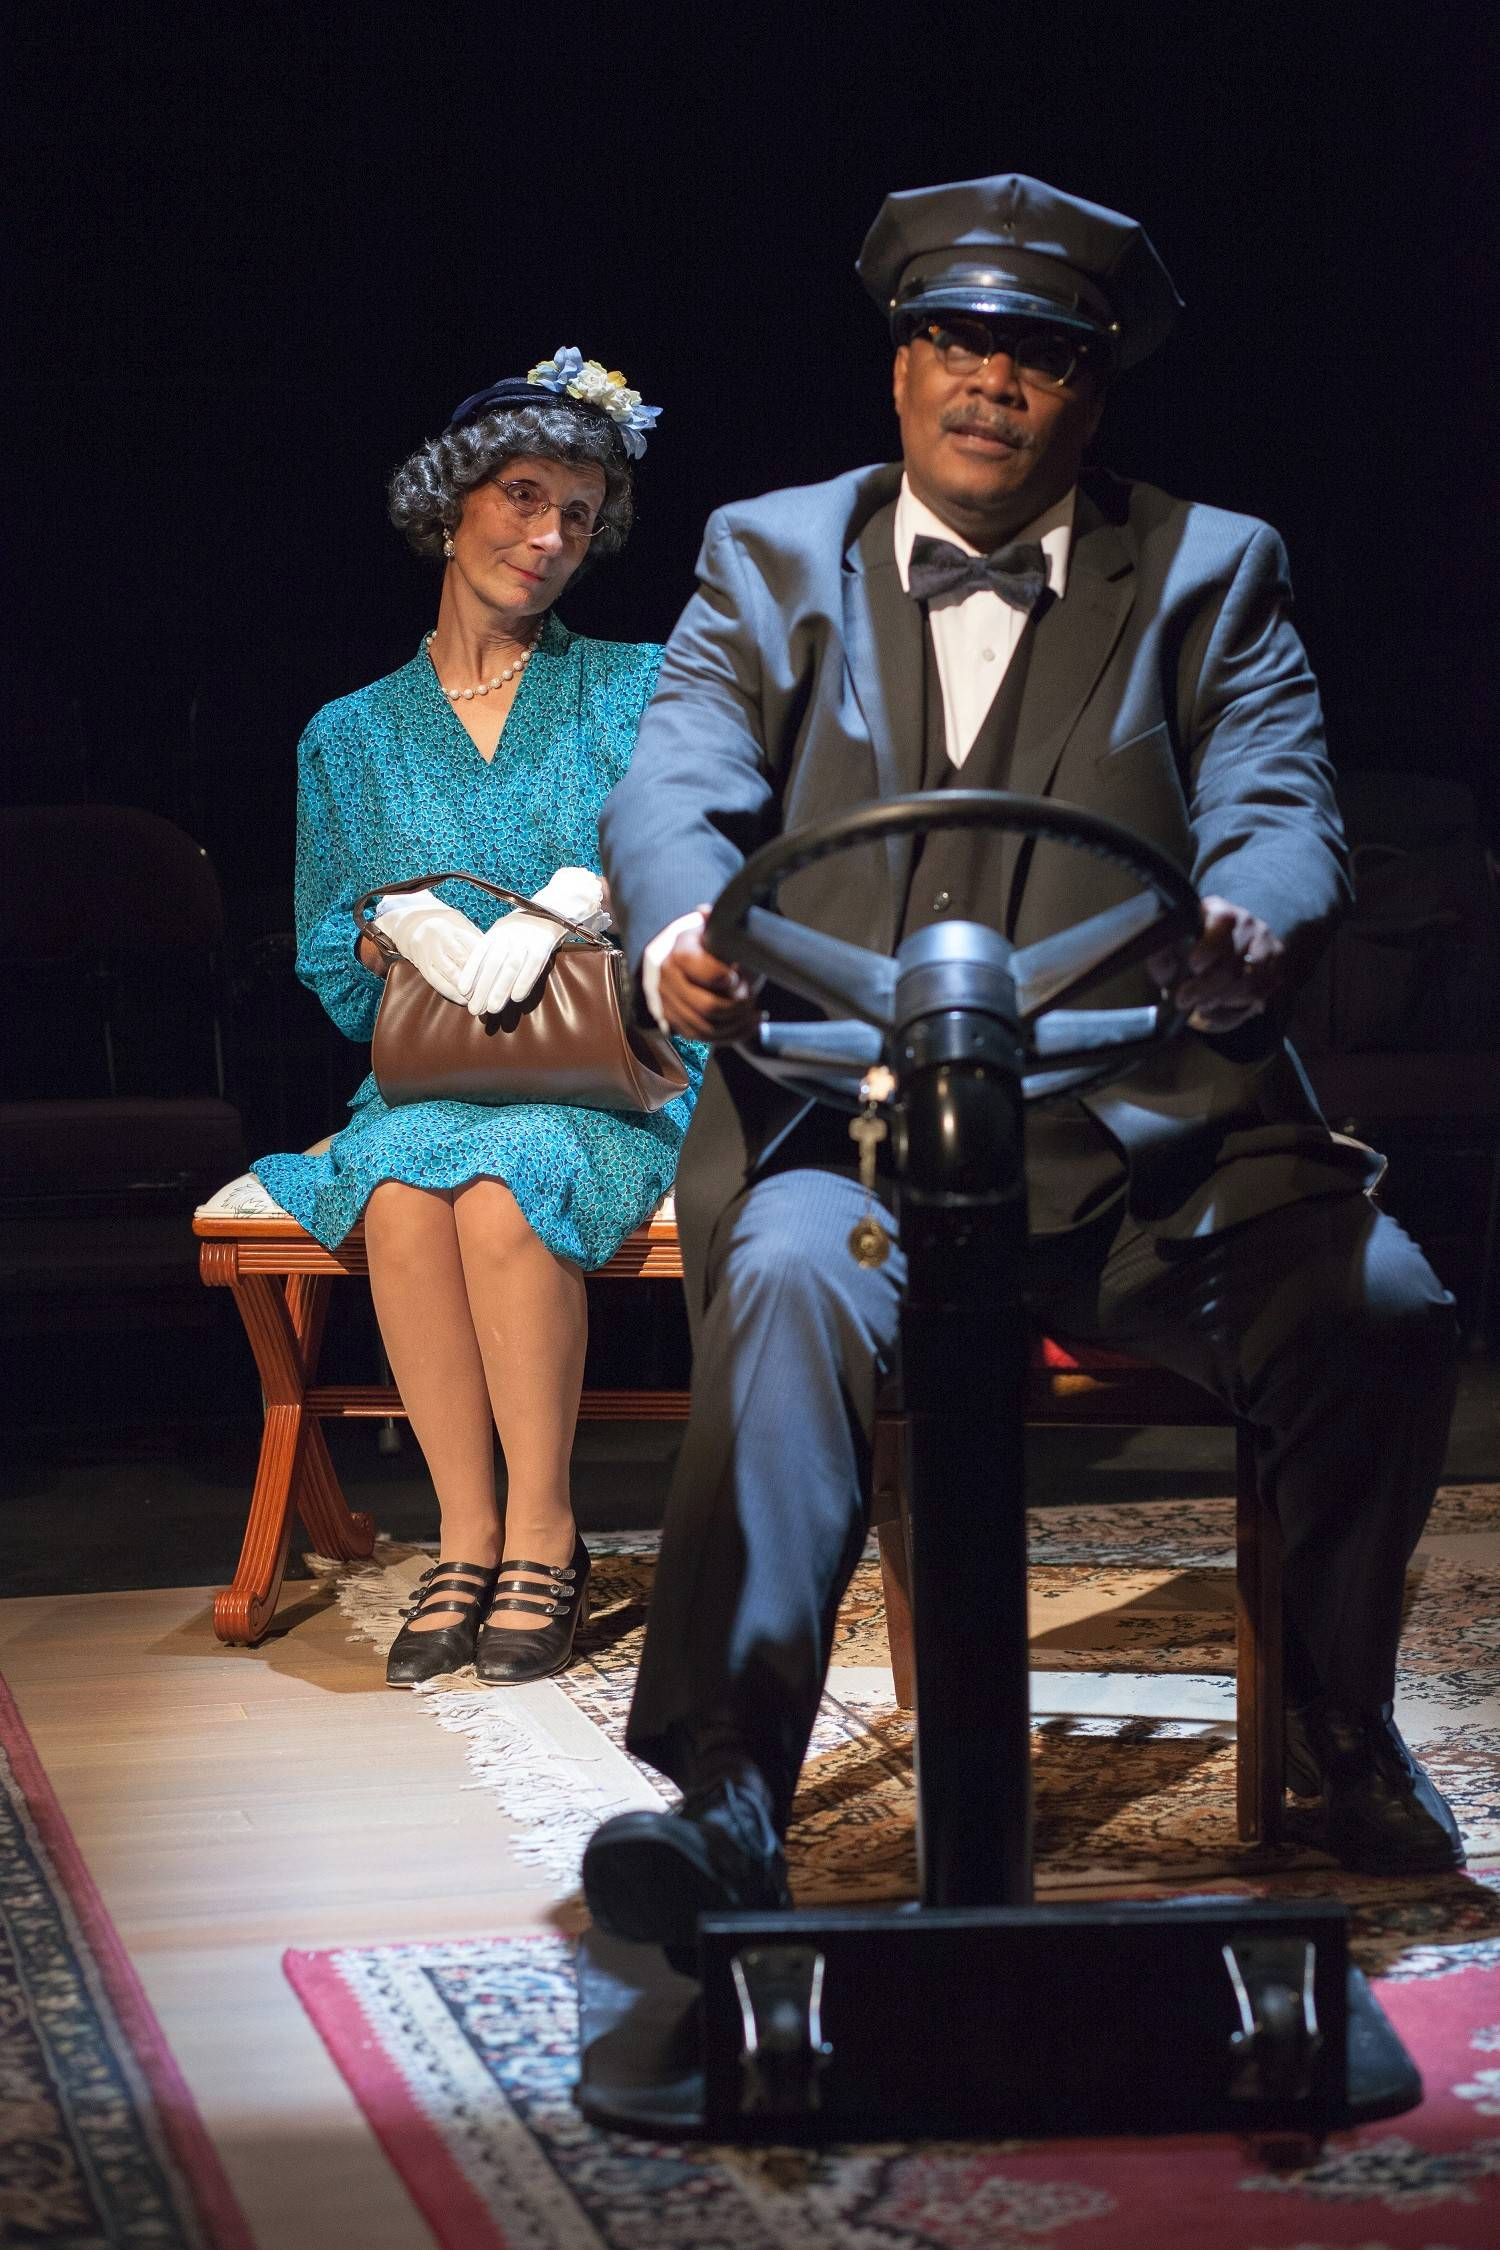 """An Evening with Playwright Alfred Uhry"" will include short selections from Uhry's Atlanta Trilogy plays including one from ""Driving Miss Daisy,"" which Harper College put on in summer 2013."